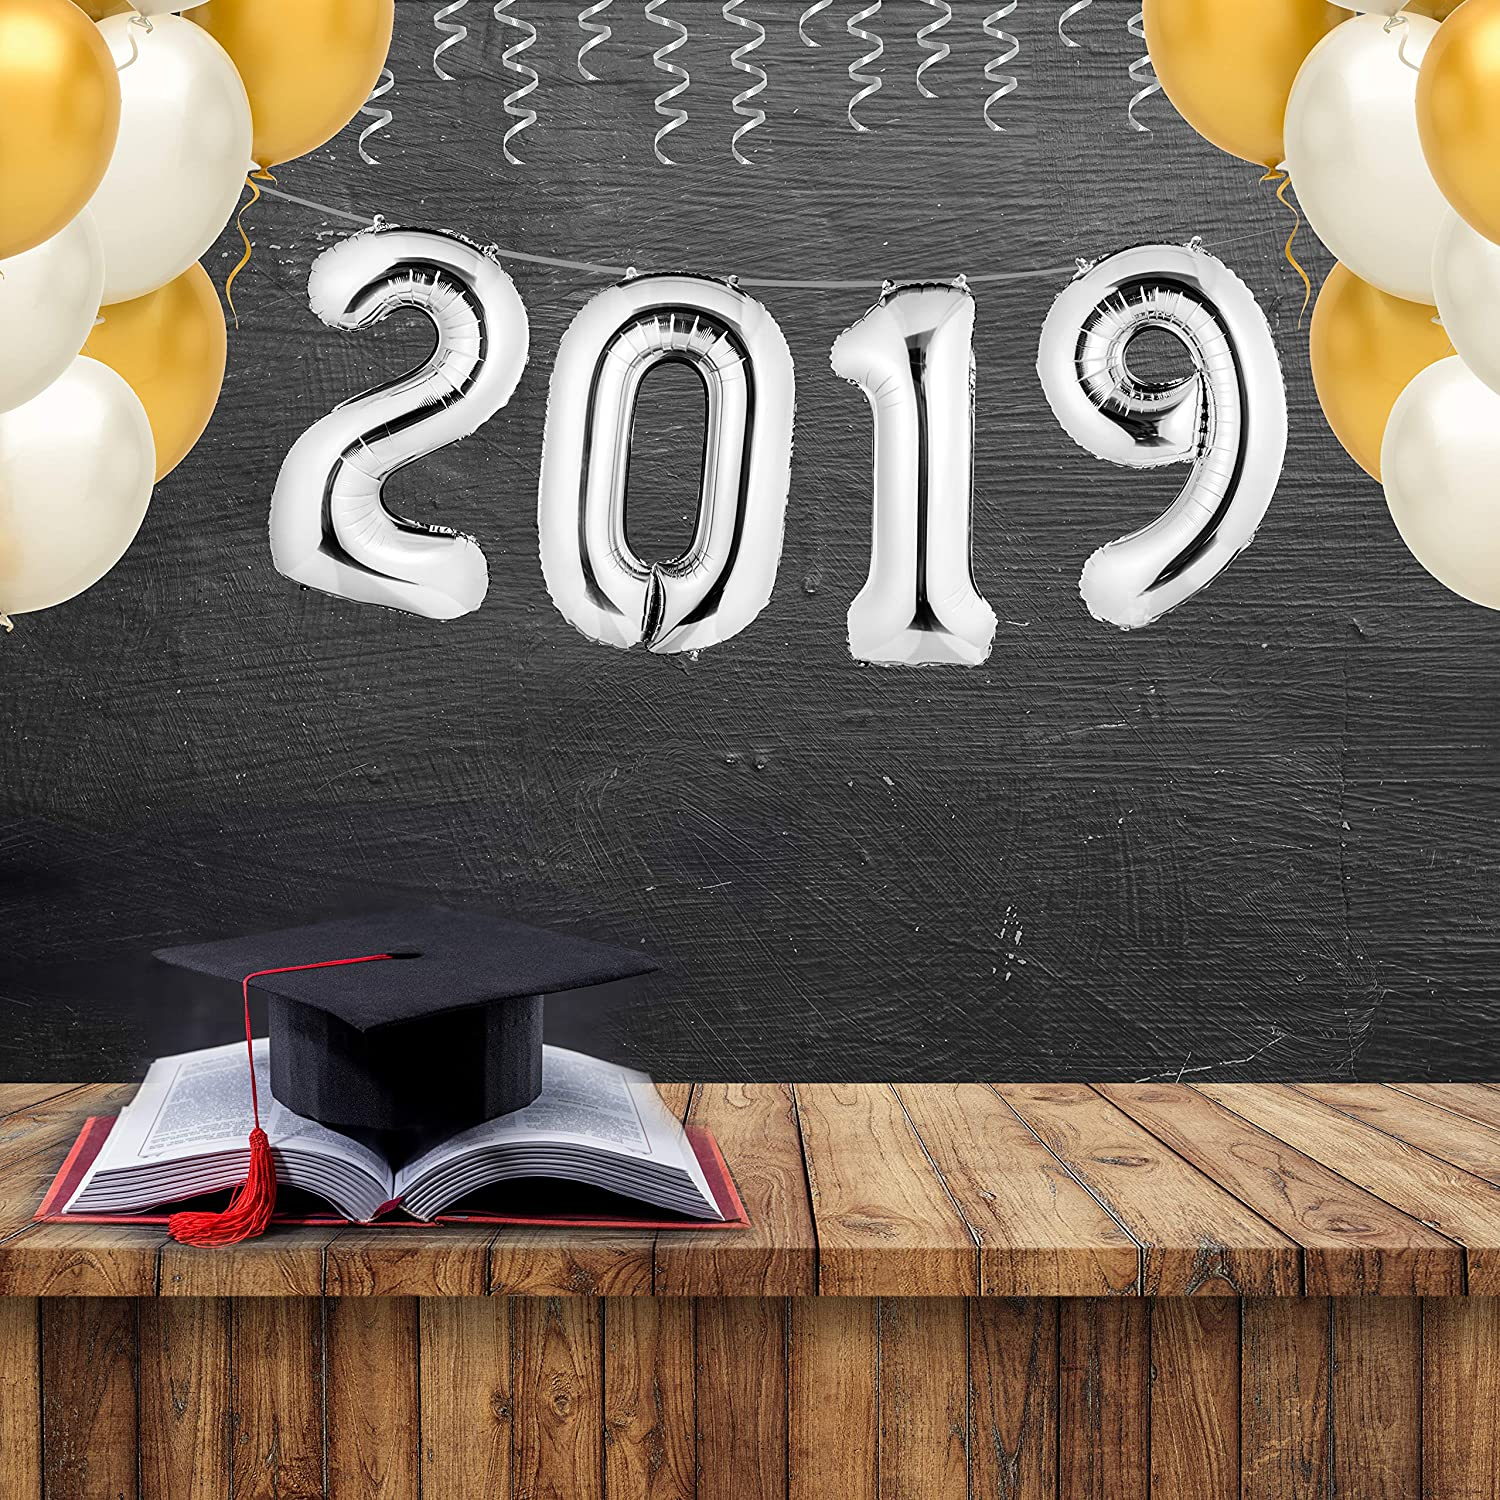 """Ribbon and Straw Included Helium Supported envizins /""""2019/"""" Silver Foil Balloon Banner 40 Graduation Balloons//New Year Eve Festival Decorations//Anniversary//Party Supplies"""